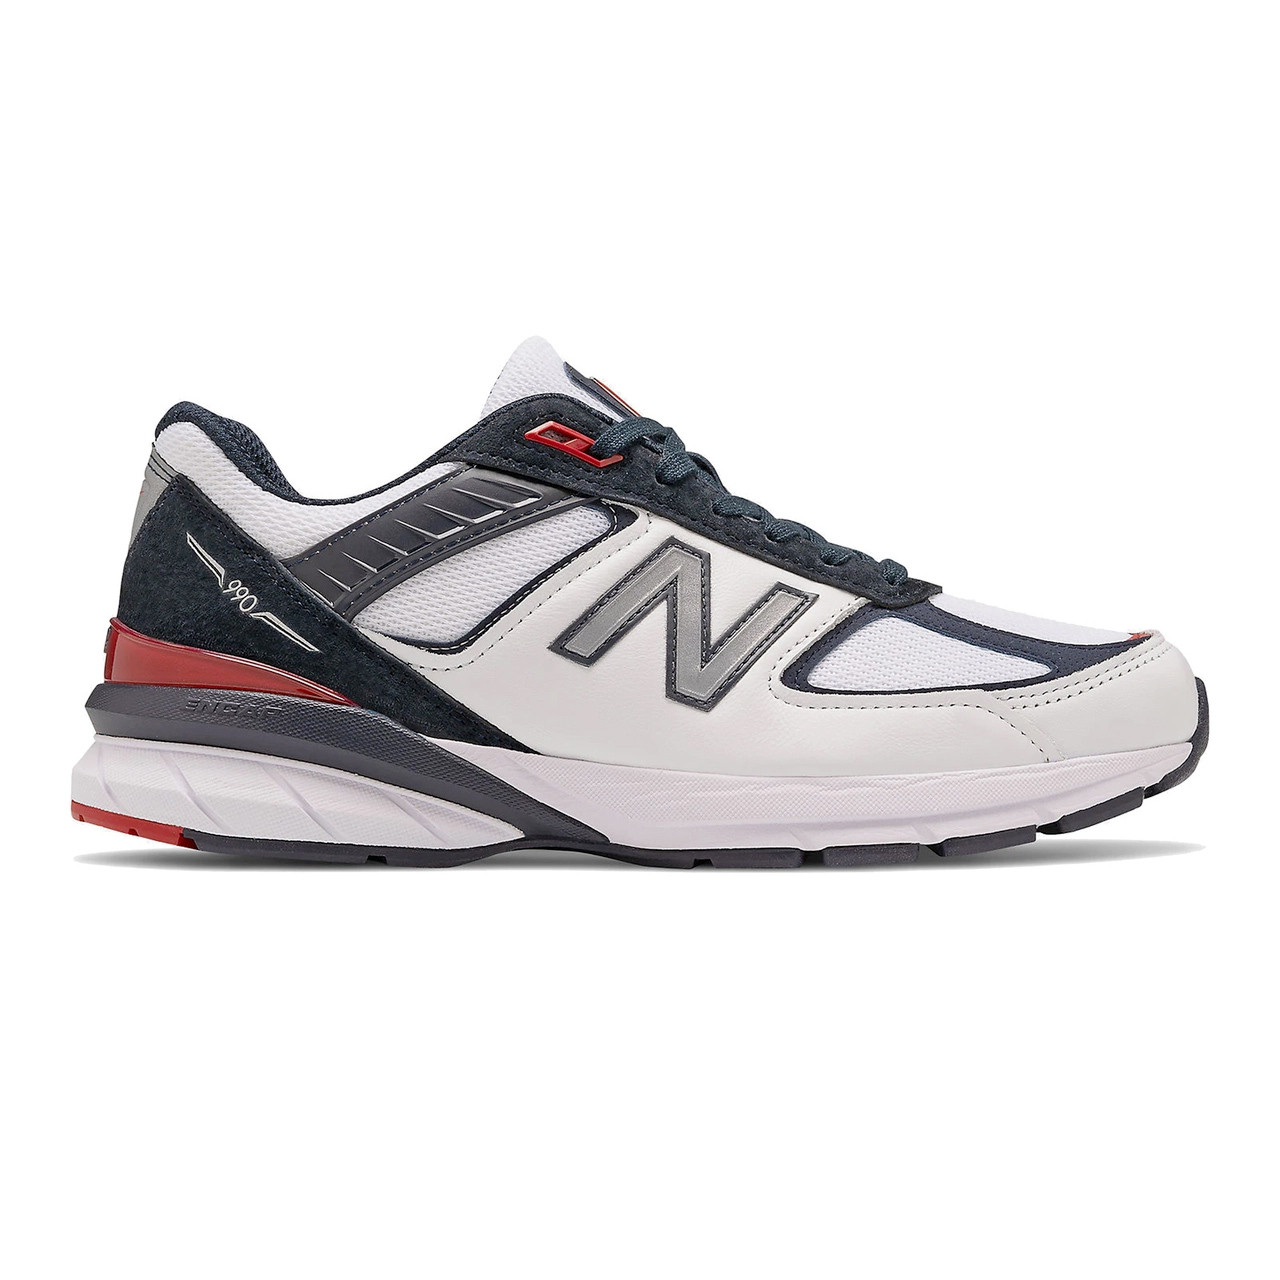 New Balance Men's Made In US 990v5 Running - Carbon with Team Red and White